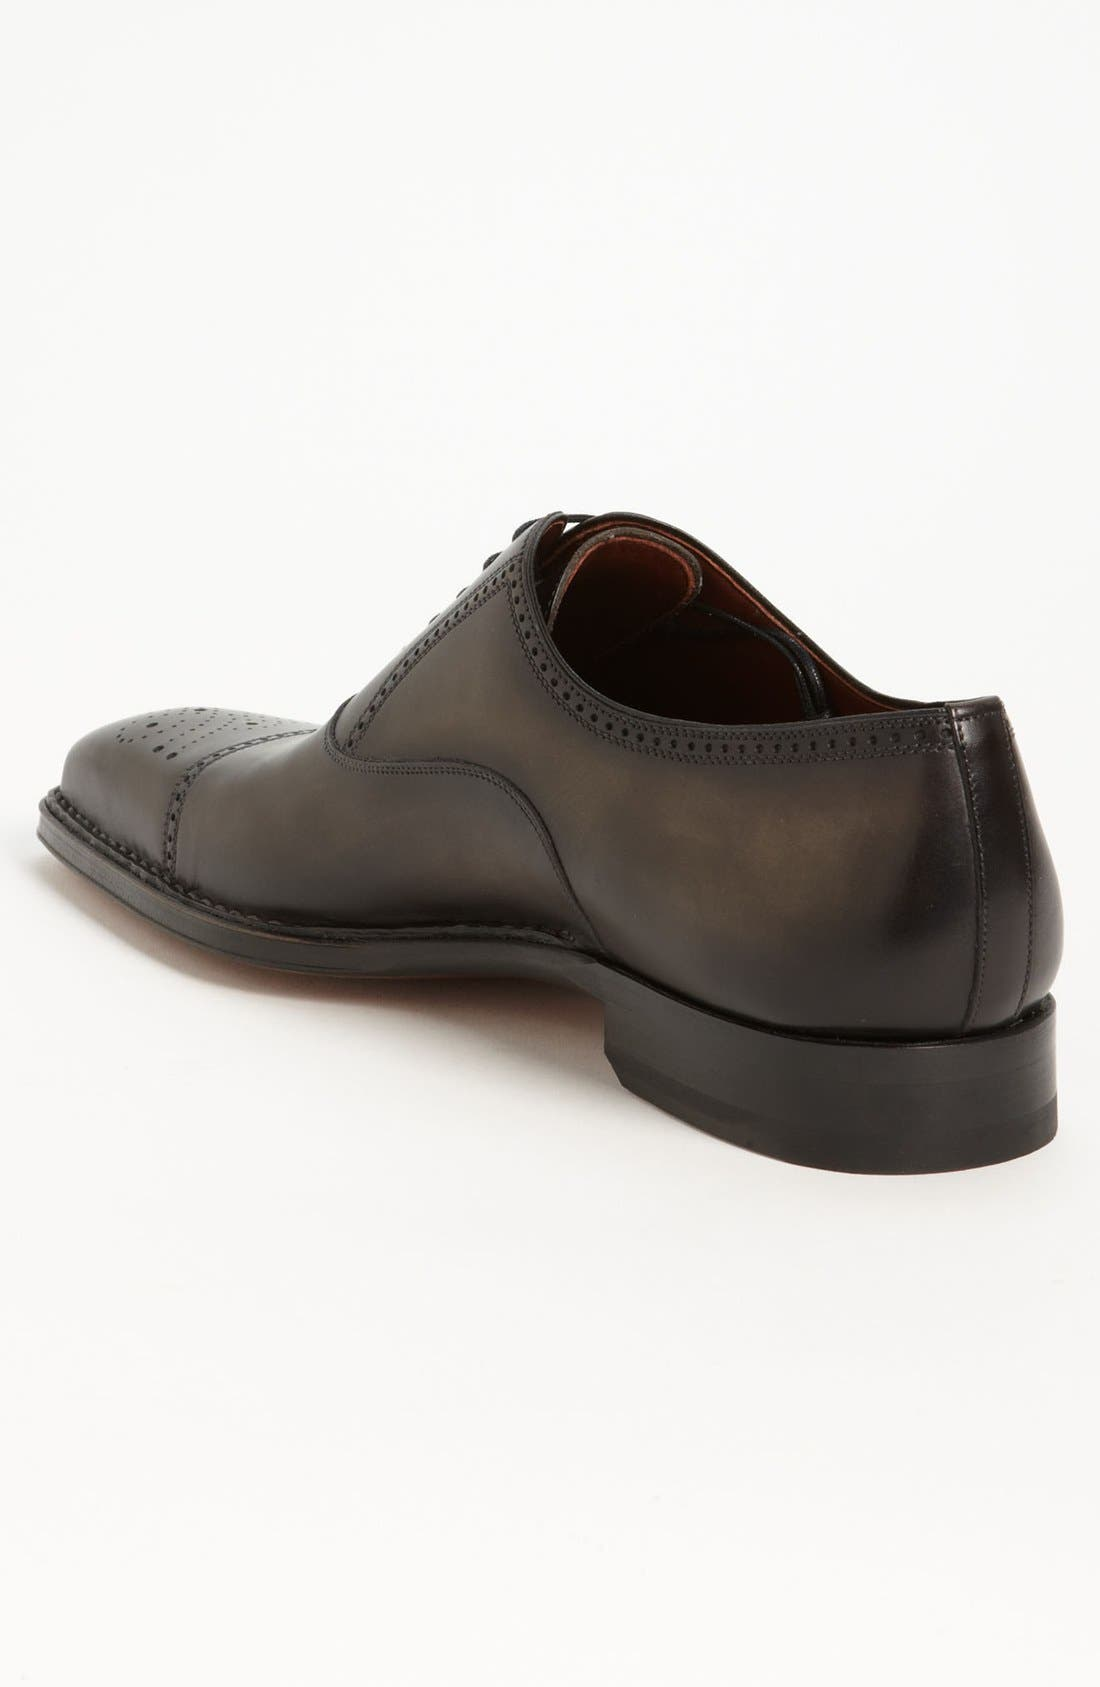 Alternate Image 2  - Magnanni 'Seleccion - Valencia' Cap Toe Oxford